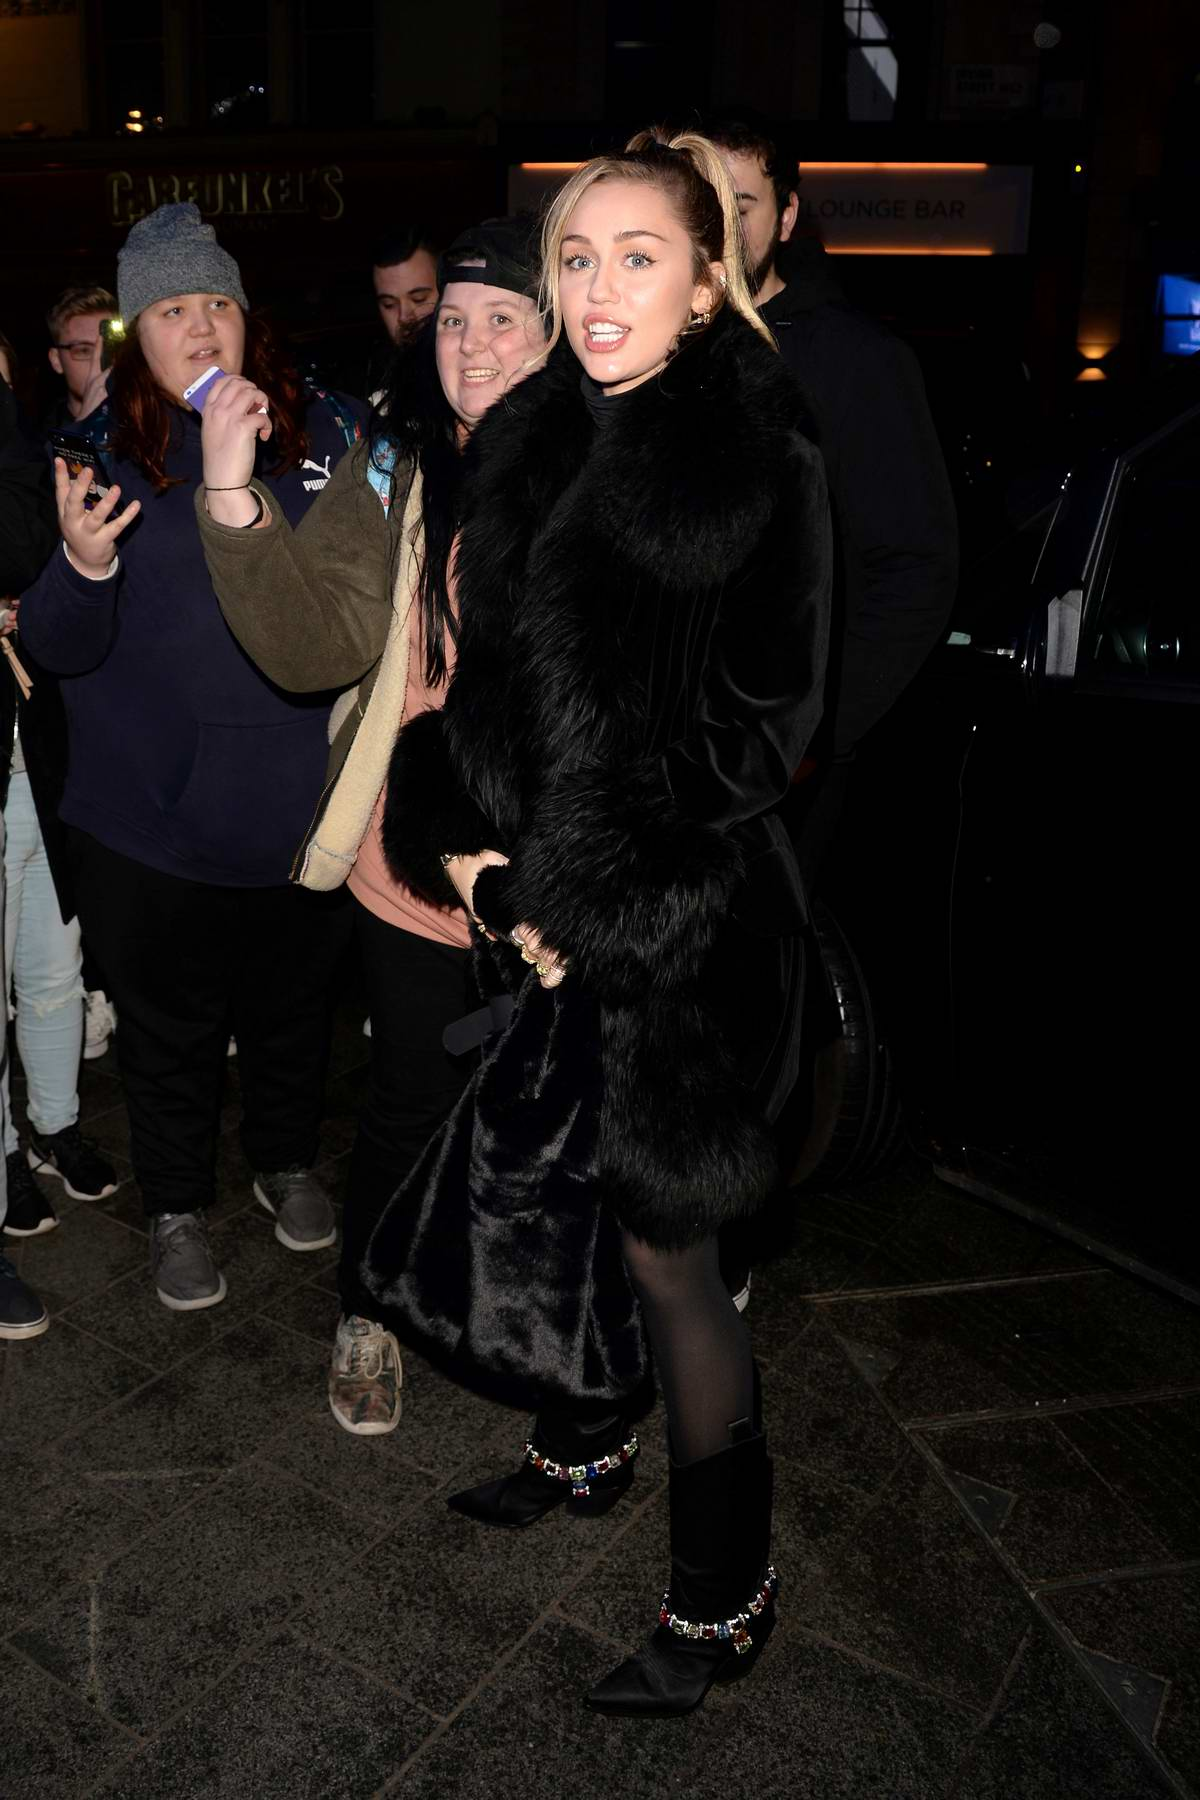 Miley Cyrus greets her fans while visiting the Capital Radio in London, UK